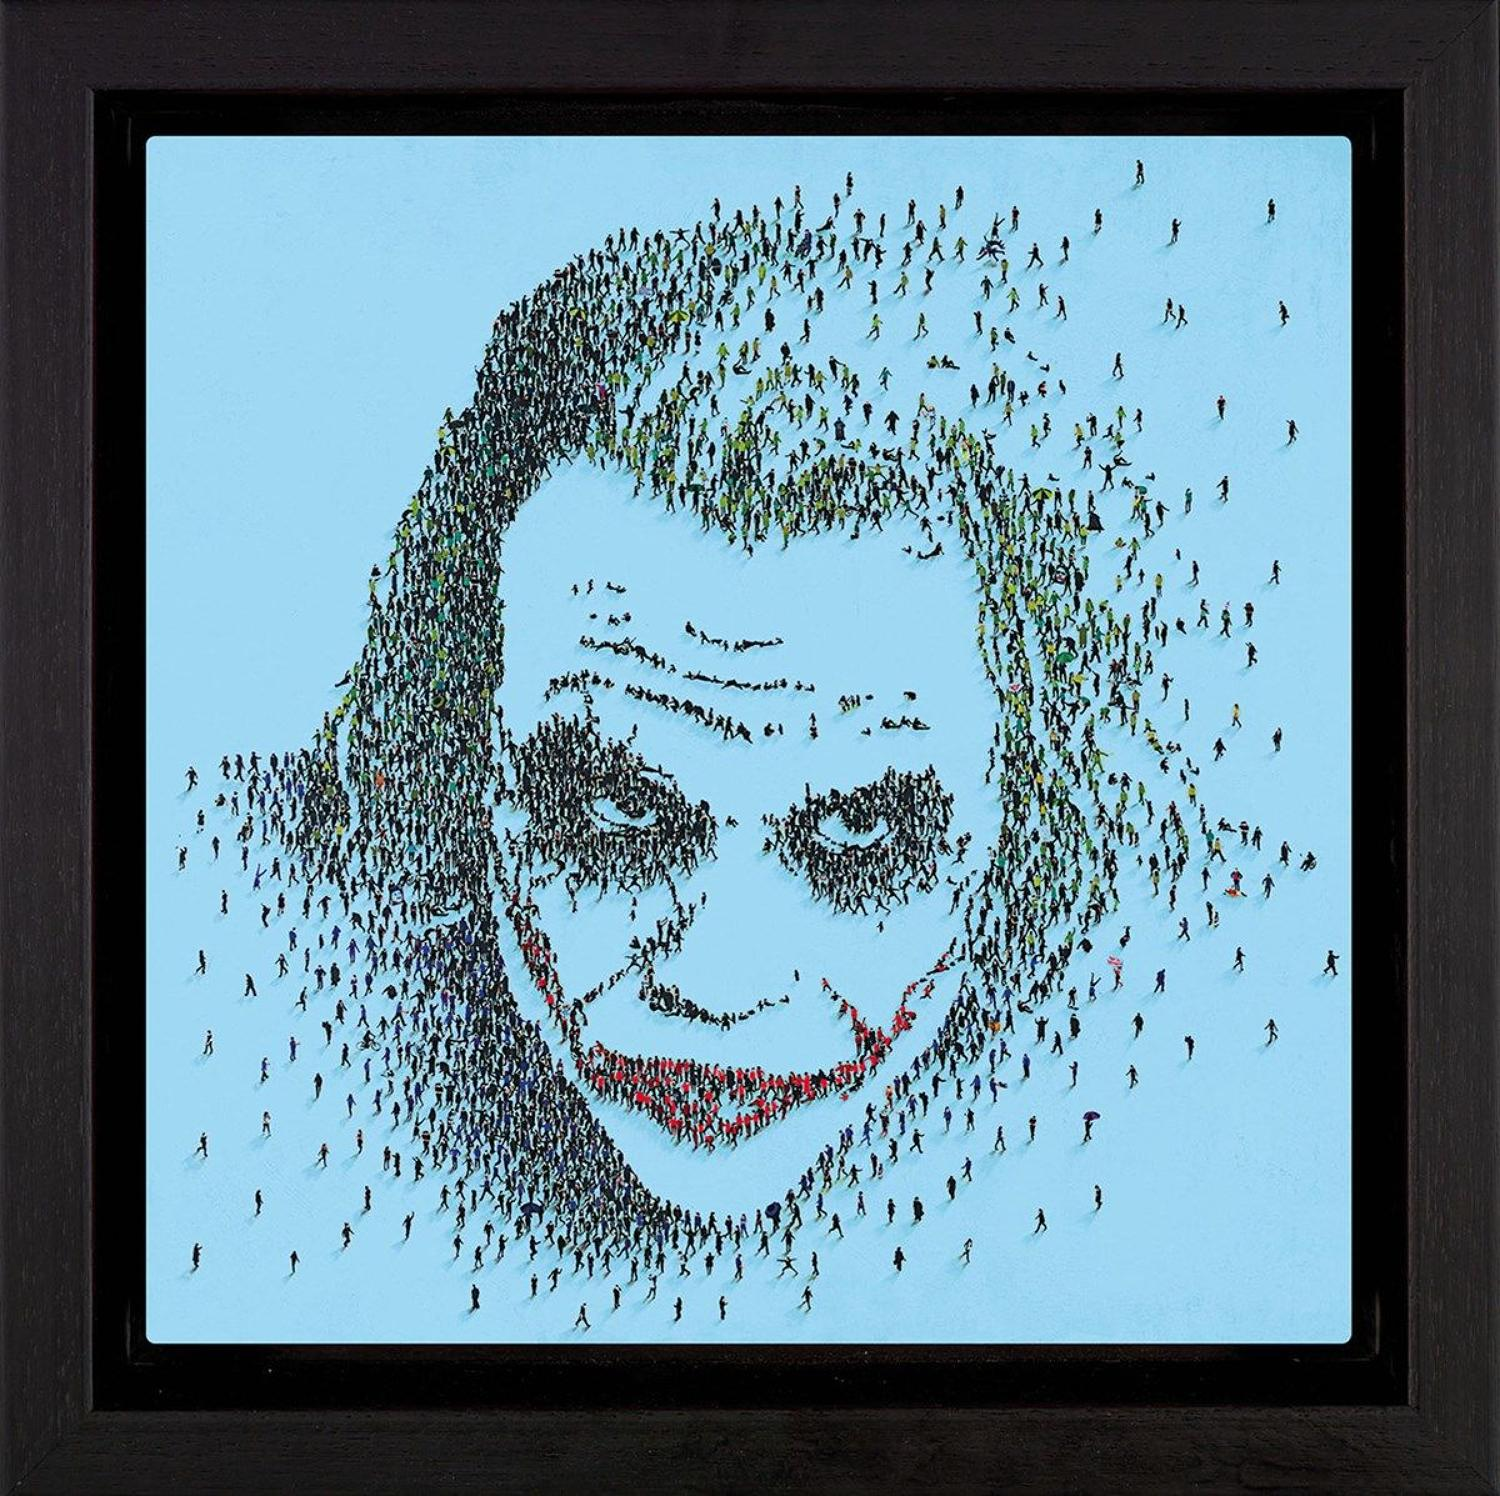 Nemesis Framed Aluminium Art Print by Craig Alan